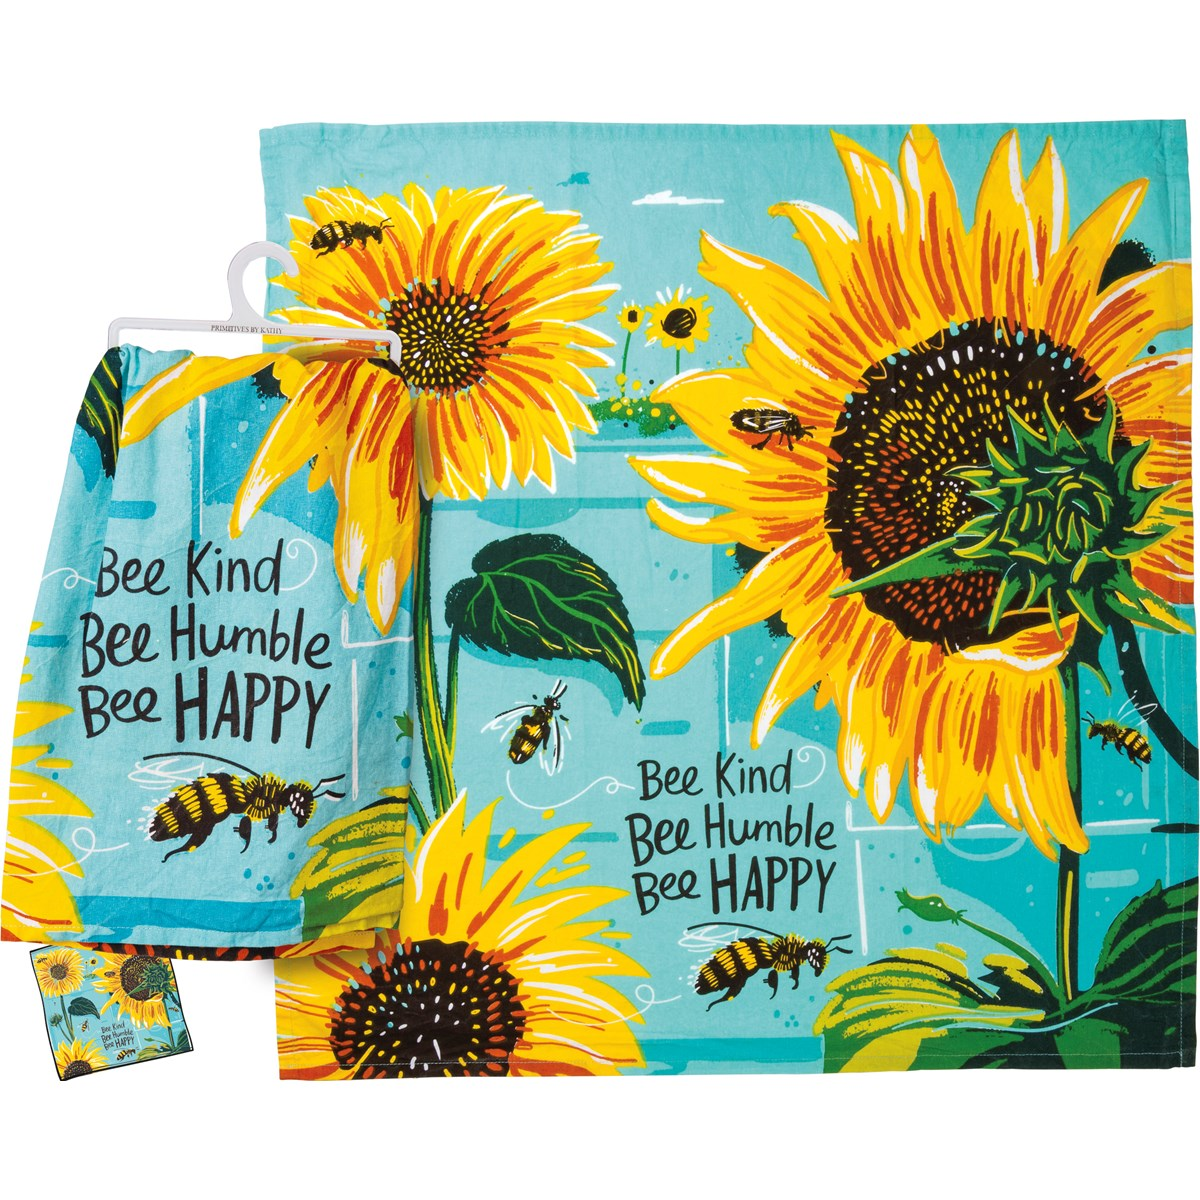 Primitives by Kathy - Bee Kind Bee Humble Bee Happy Dishtowel